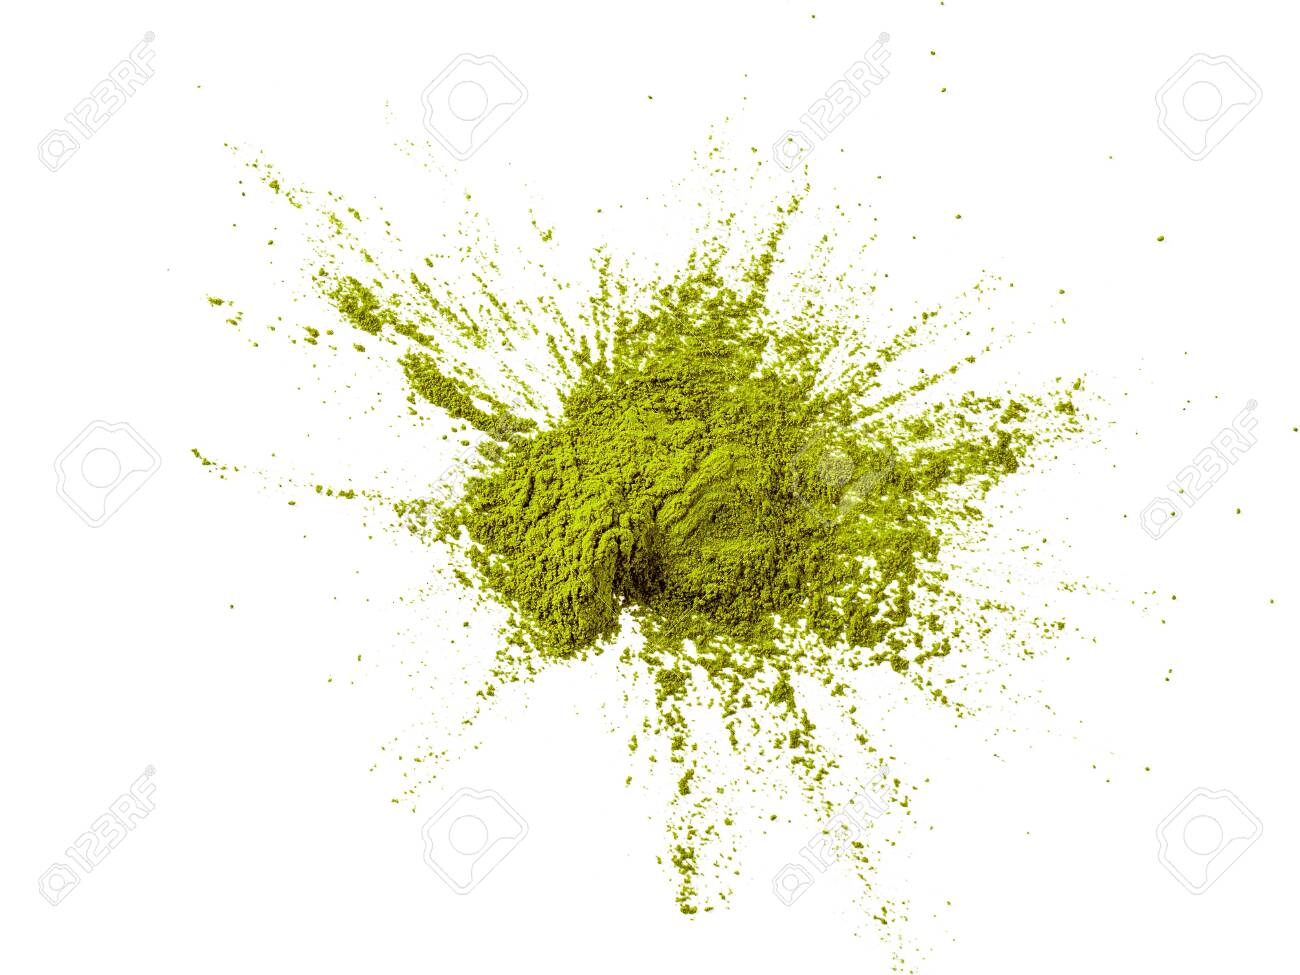 Green matcha tea powder on white background. Powdered maccha tea explosion, isolated on white with clipping path. Top view or flat lay. - 142361845